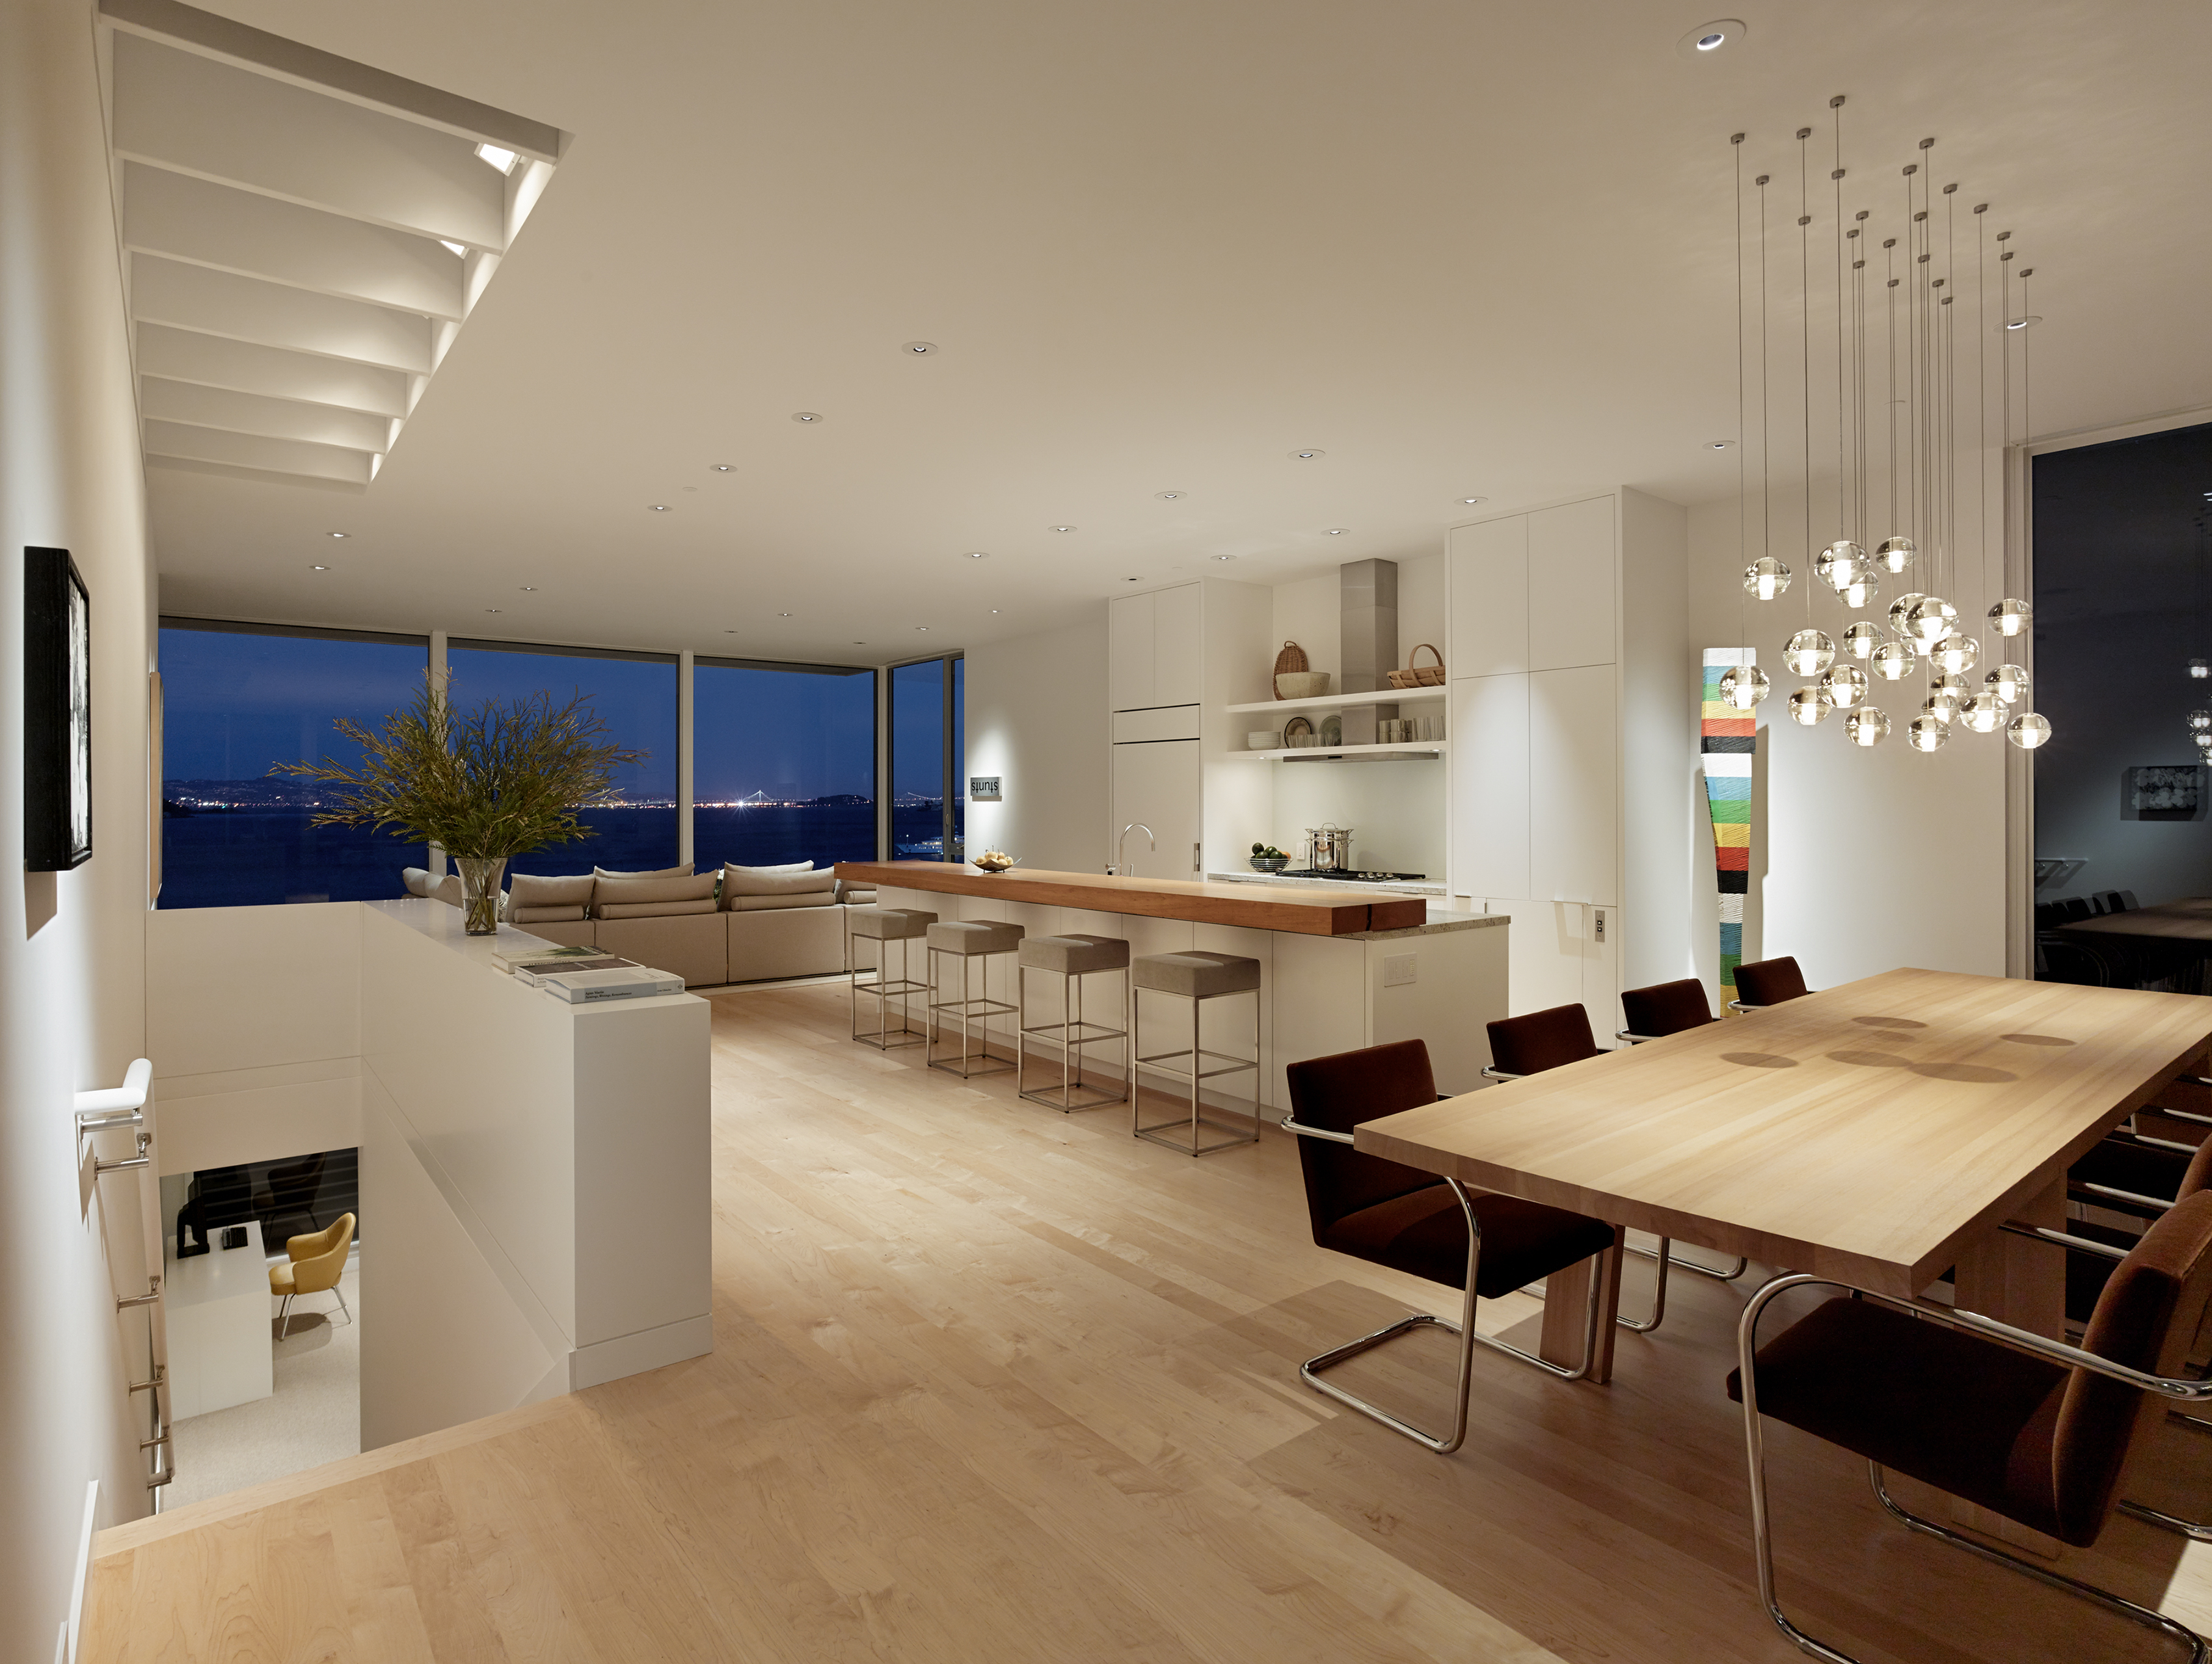 The view at night from the same spot highlights the city lights across the bay. The light fixture sparkles beautifully above the table, and recessed lighting keeps the rest of the space well-lit. The minimalist design allows the views to take full effect.